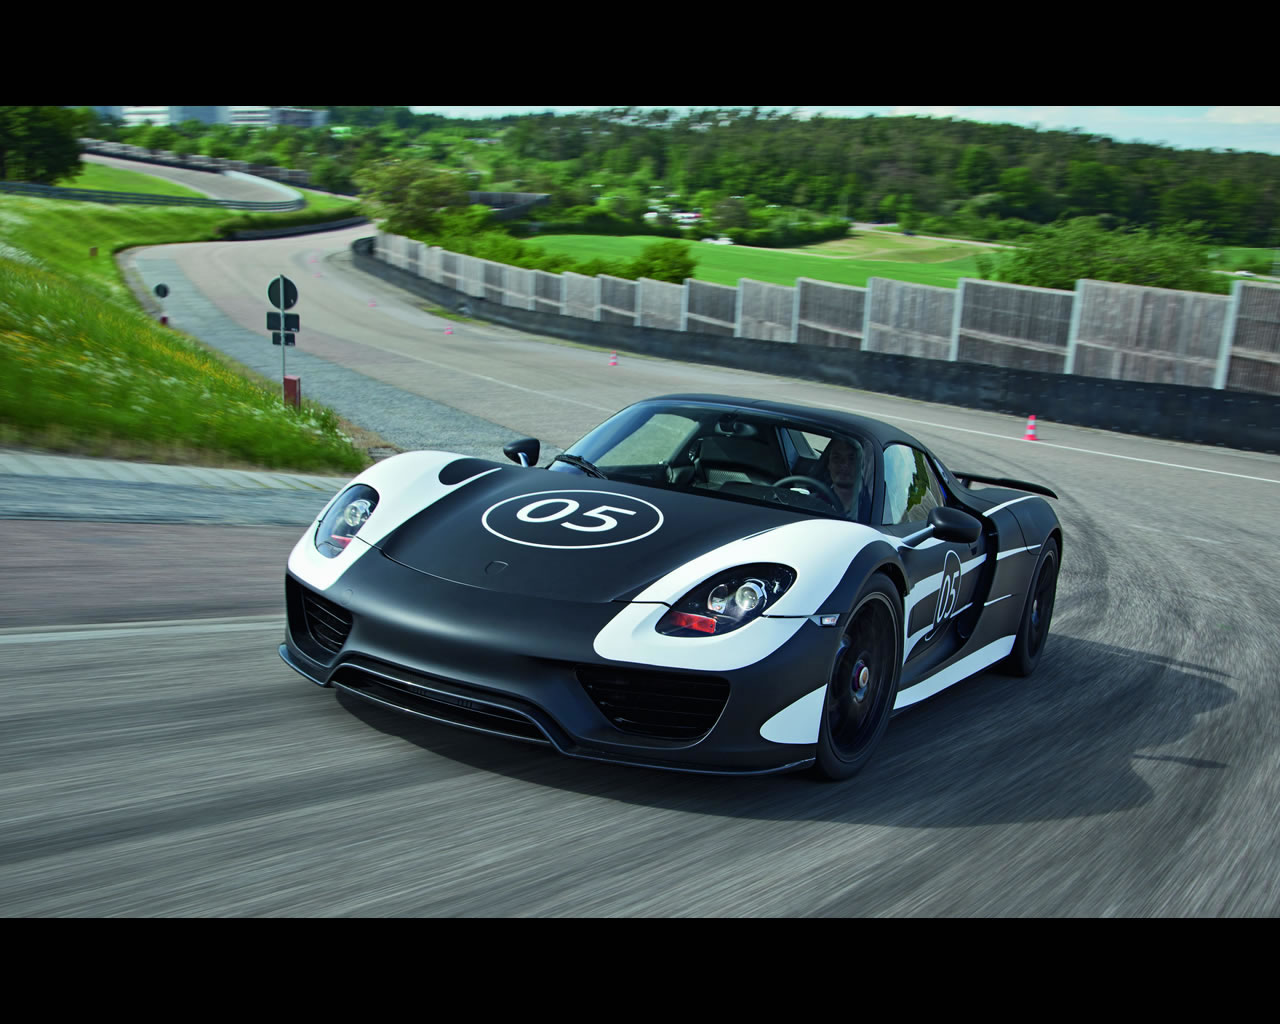 porsche 918 spyder plugin hybrid prototype for 2013. Black Bedroom Furniture Sets. Home Design Ideas